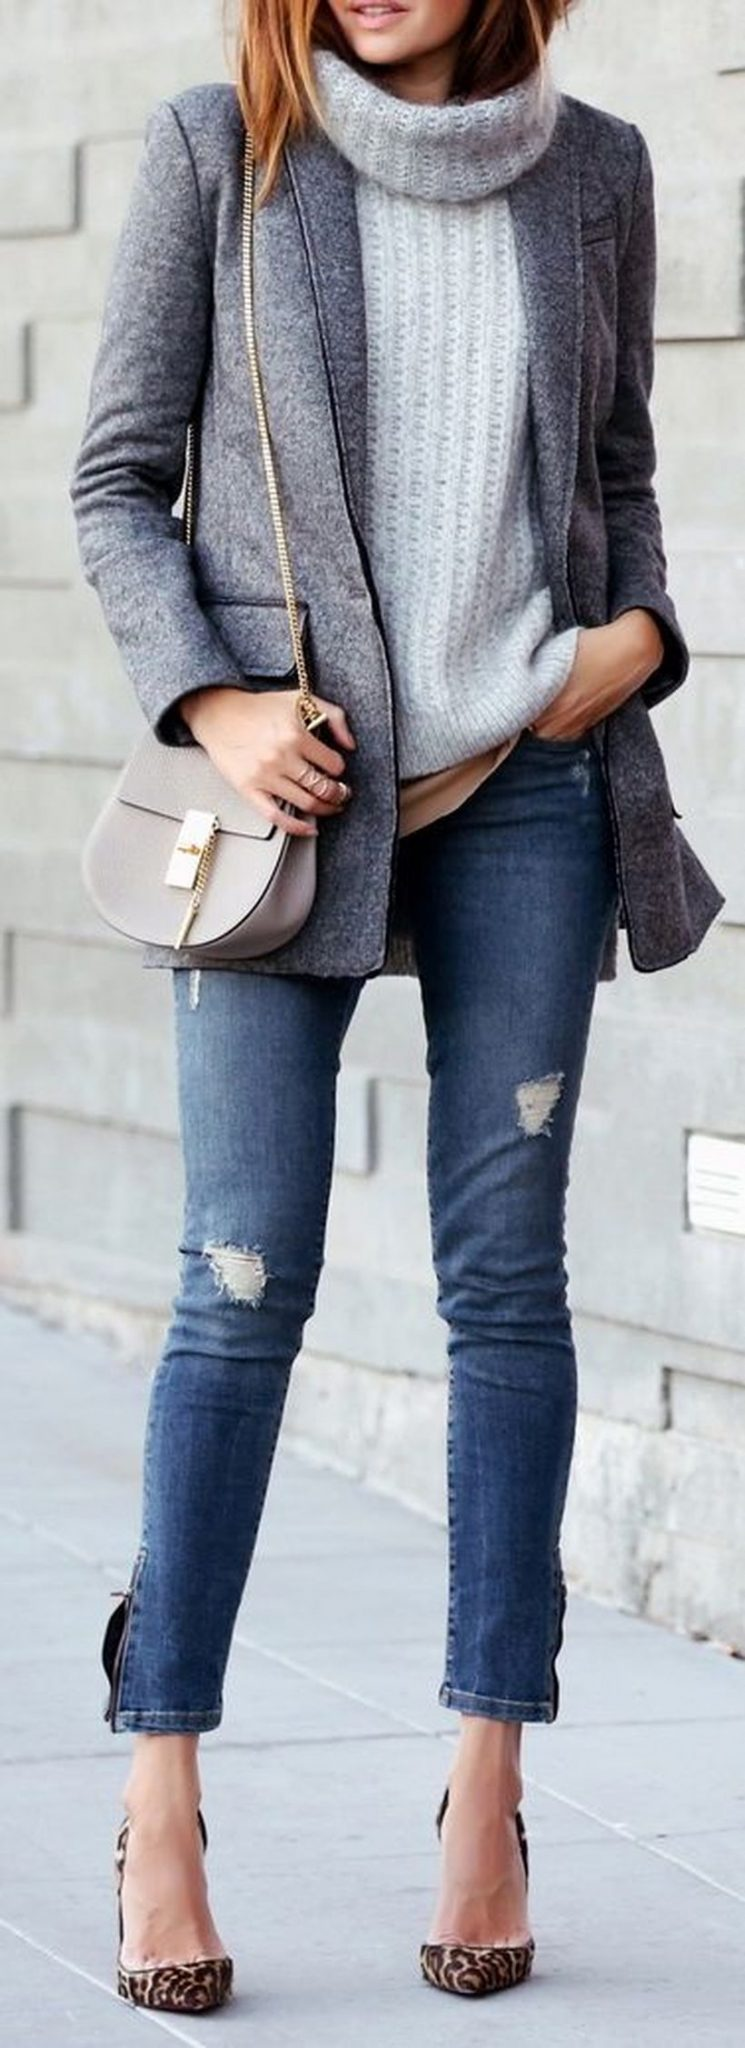 Fashionable outfit style for winter 2017 51